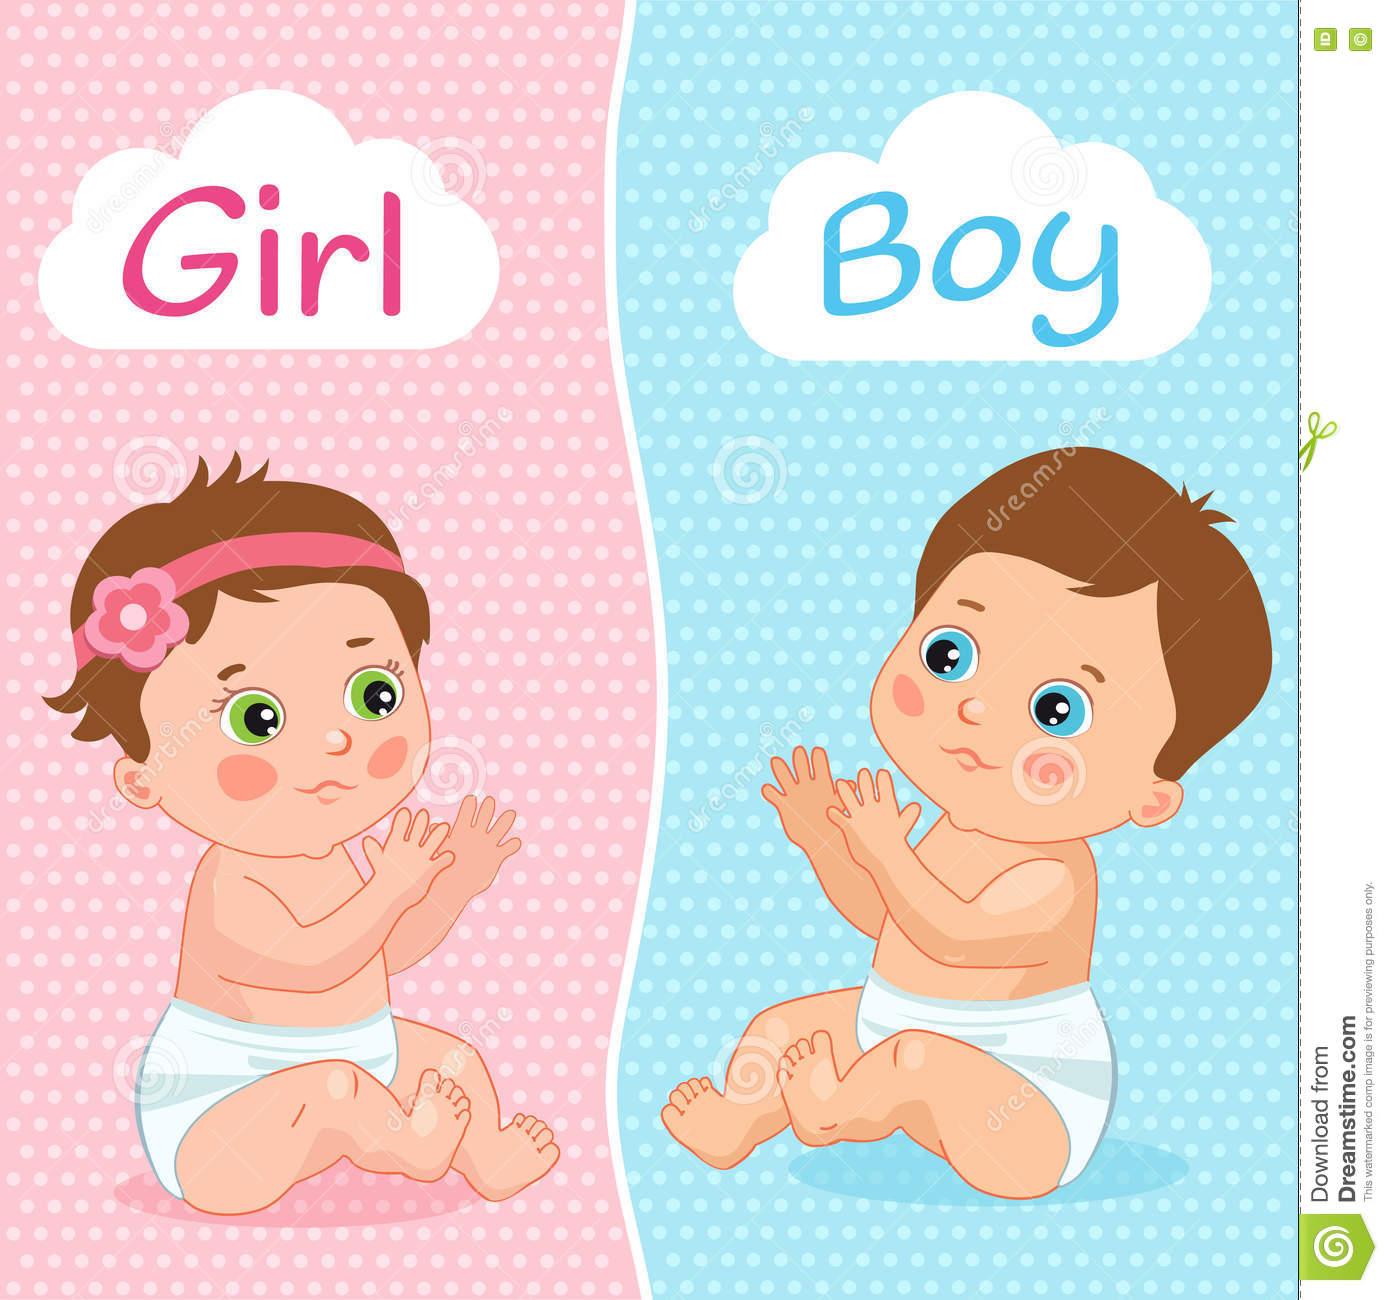 Baby Boy And Baby Girl Vector Illustration Two Cute Cartoon Babies